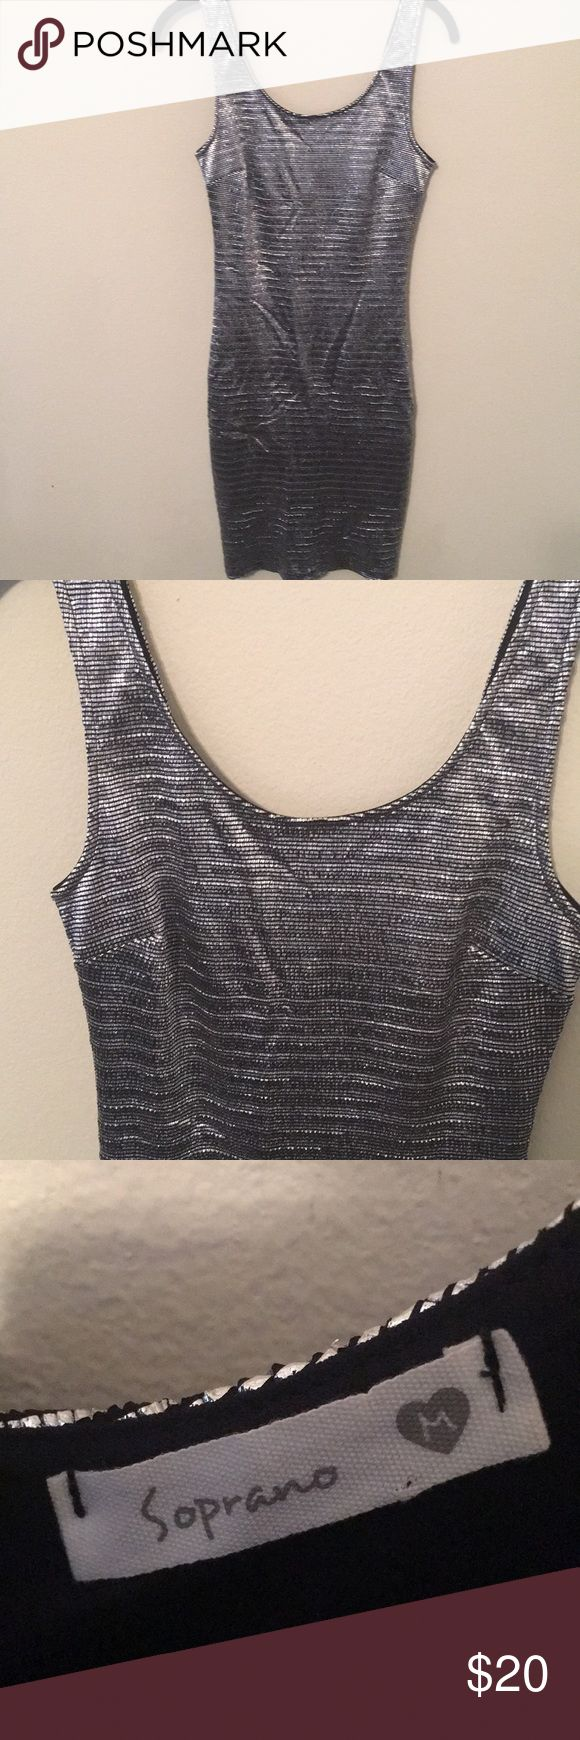 Metallic silver bodycon dress Metallic silver bodycon dress, size medium, worn once, like new condition Soprano Dresses Mini